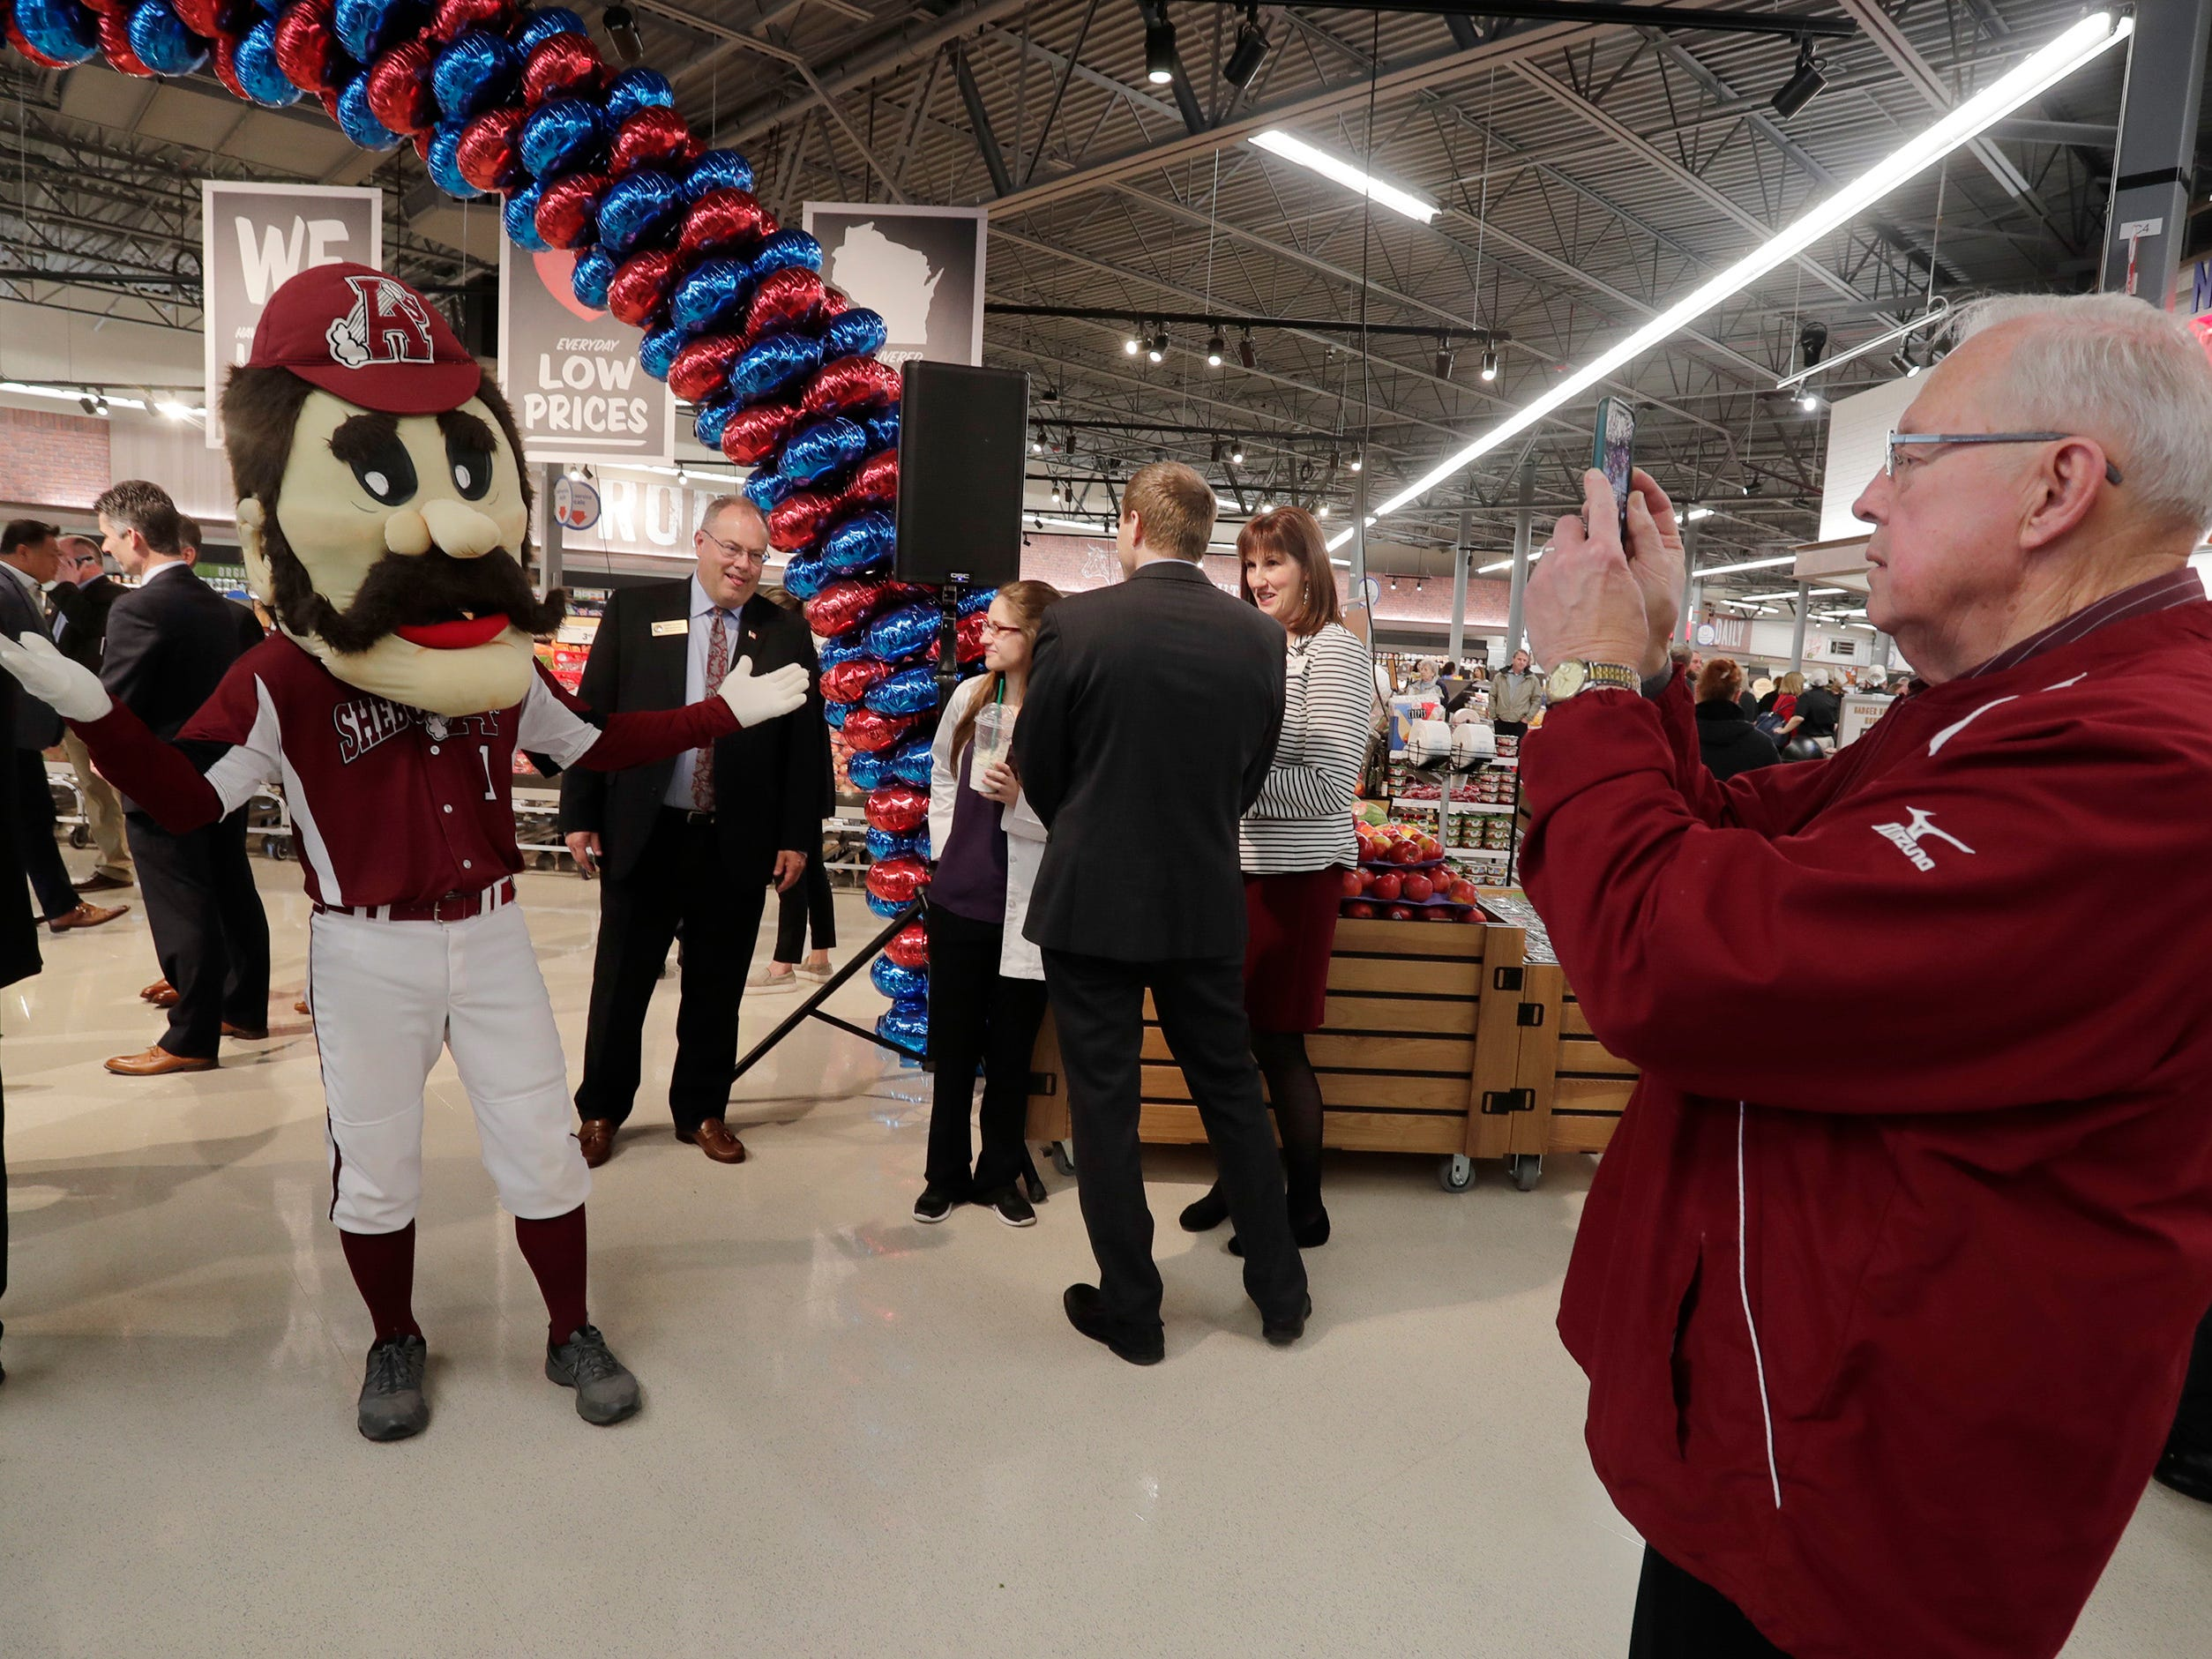 Sheboygan A's No. 1, left, poses for Denny Moyer during the grand opening festivities at Meijer, Thursday April 25, 2019, in Sheboygan, Wis. The 155,000-square-foot supercenter has 300 employees on opening day.